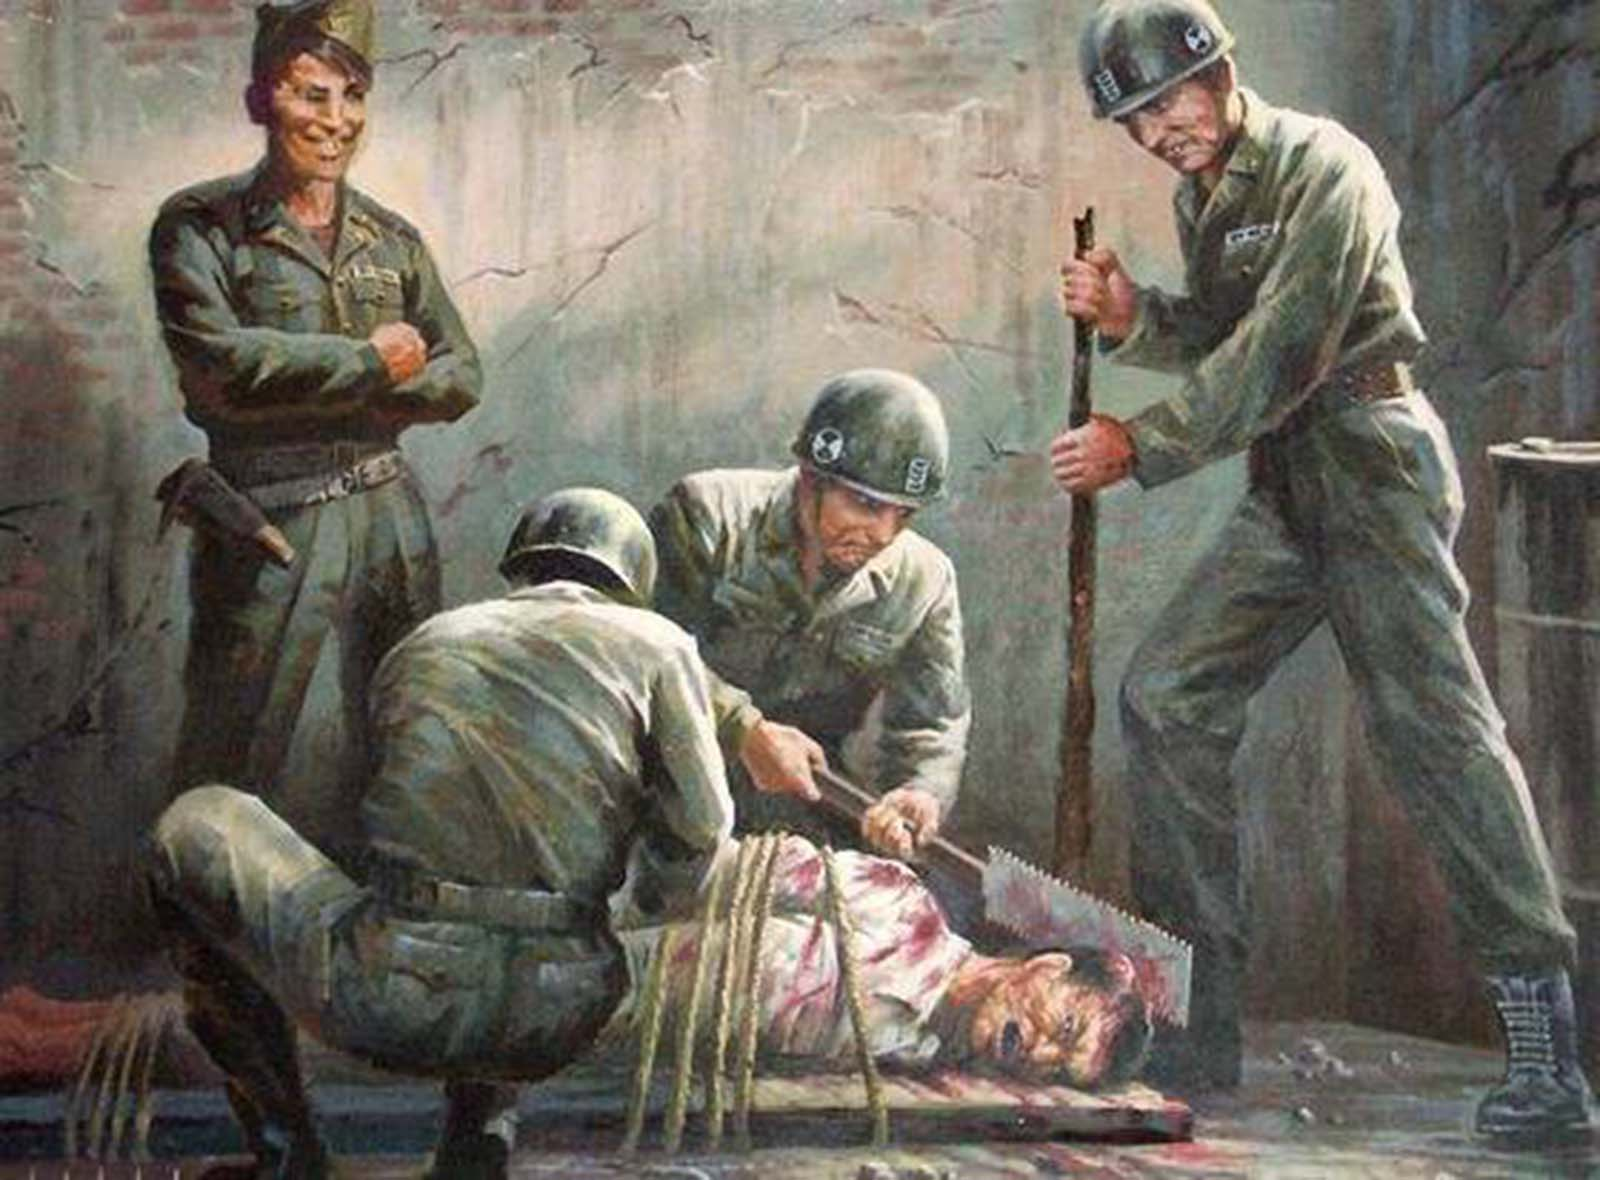 A gruesome propaganda painting produced by North Korea which depicts the alleged crimes American soldiers carried out on Koreans during the Korean War.